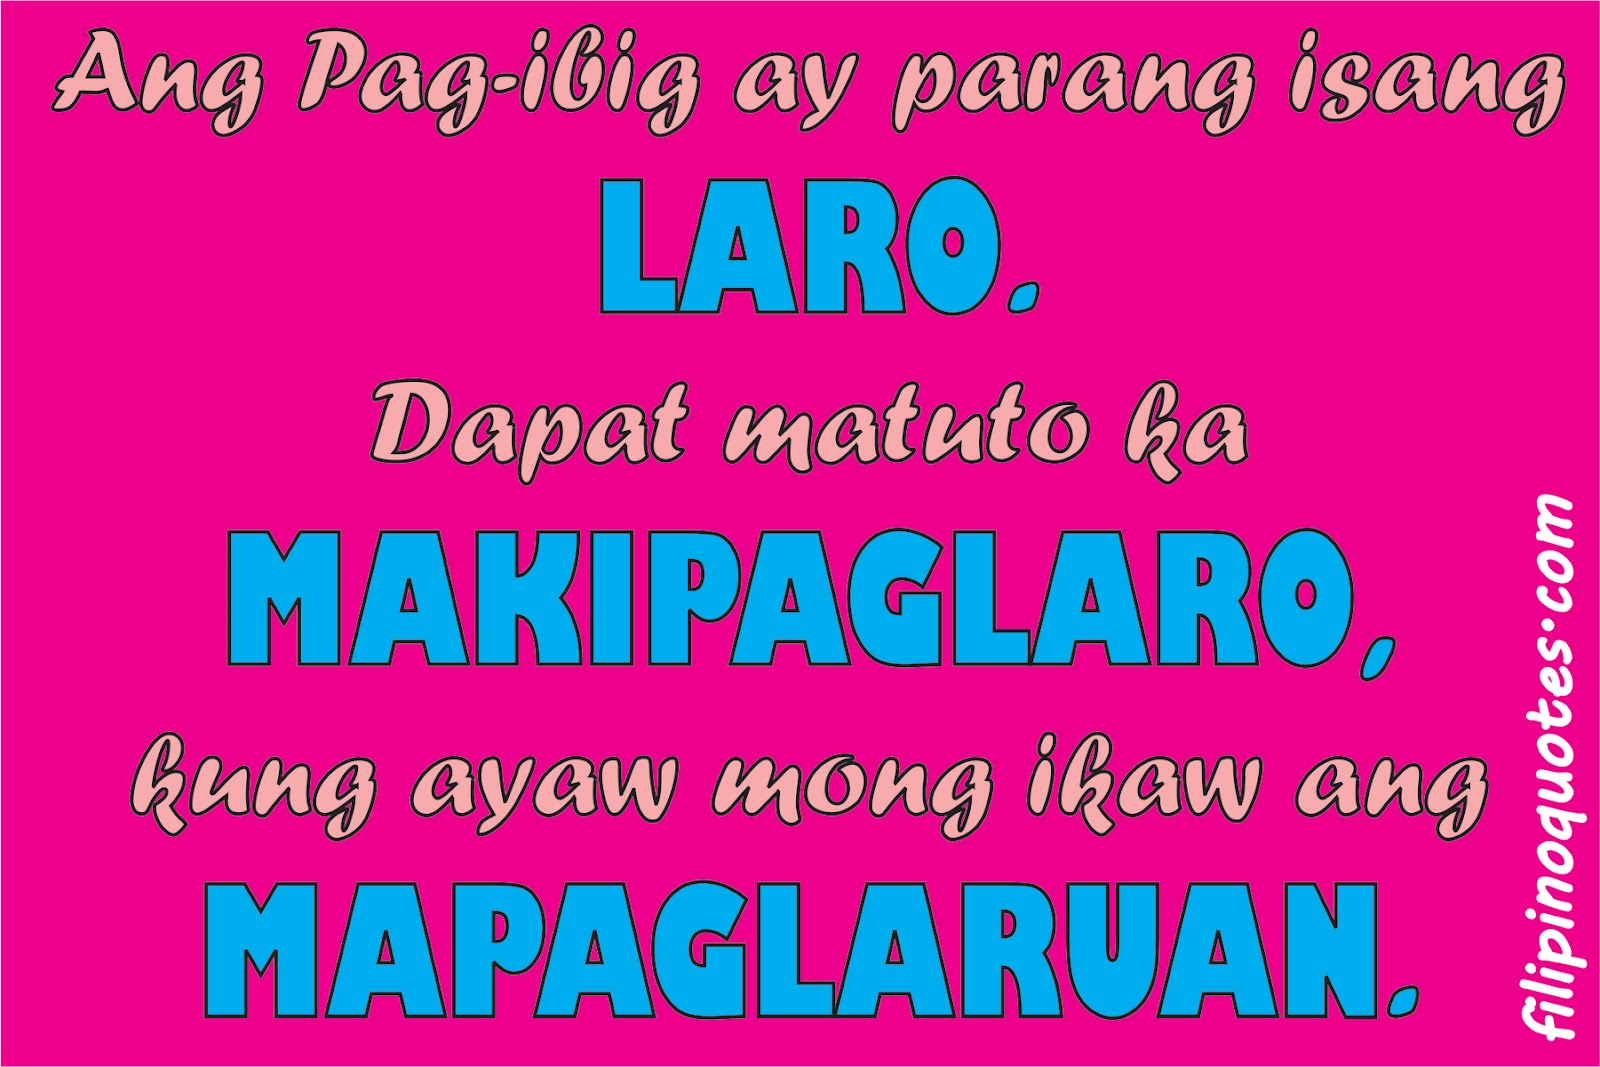 Love Quotes With People Pictures Tagalog : Tagalog Love Quotes (May 2012) - Tagalog Love Quotes